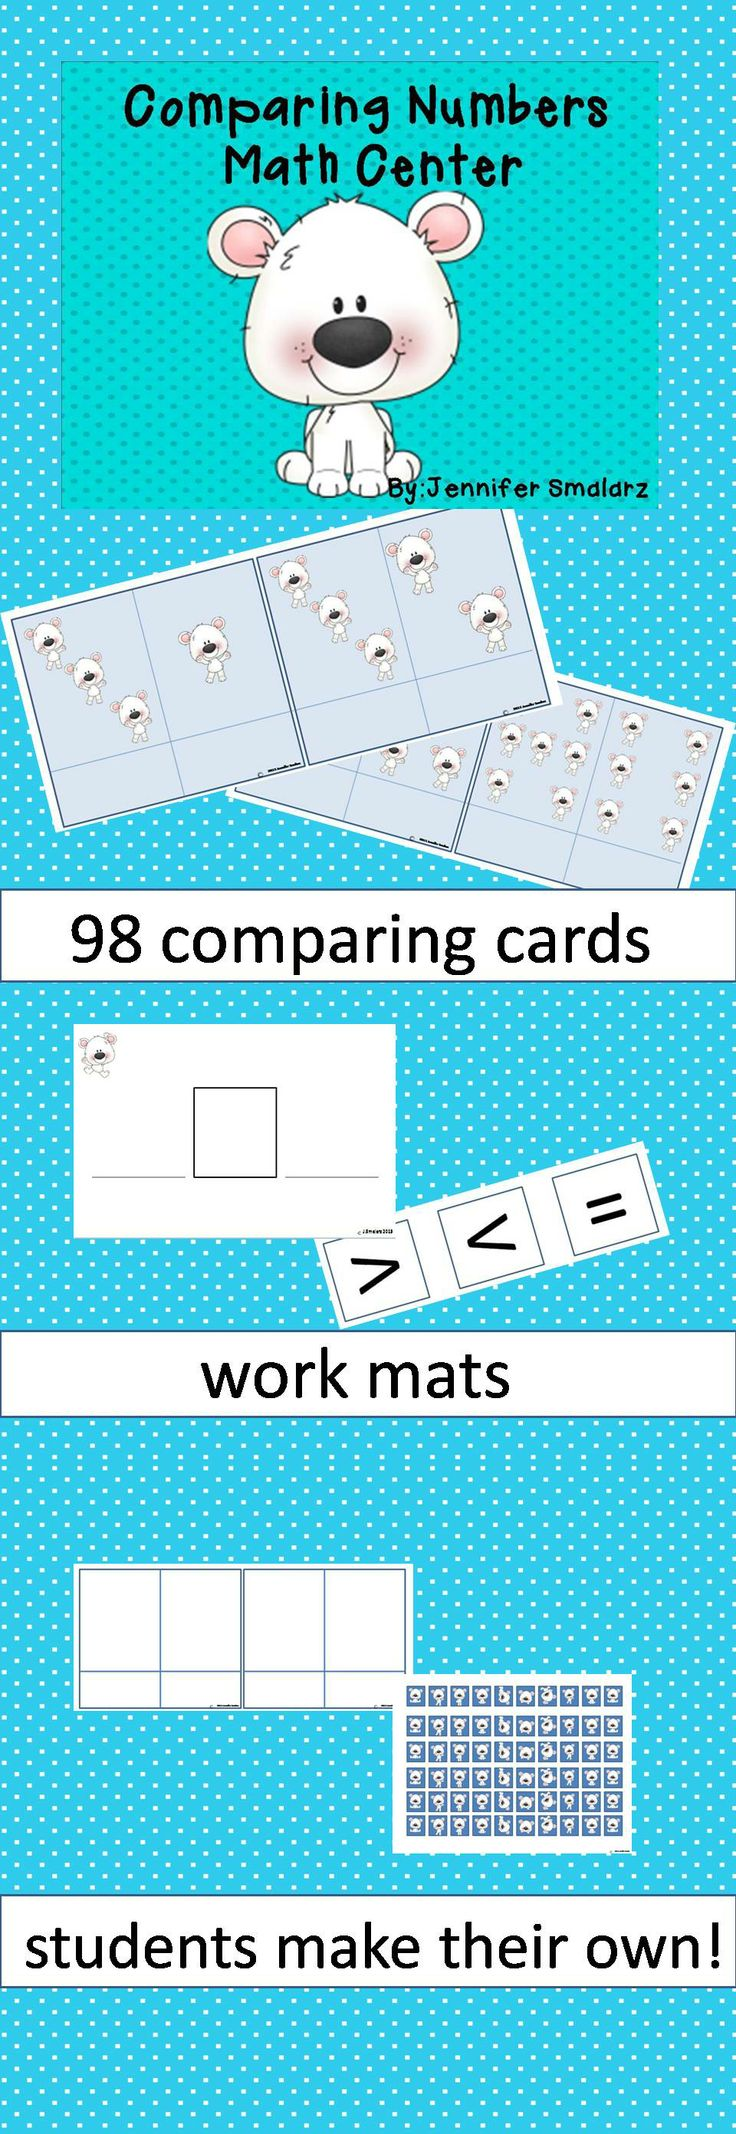 39 best Comparing Numbers images on Pinterest   Comparing numbers ...